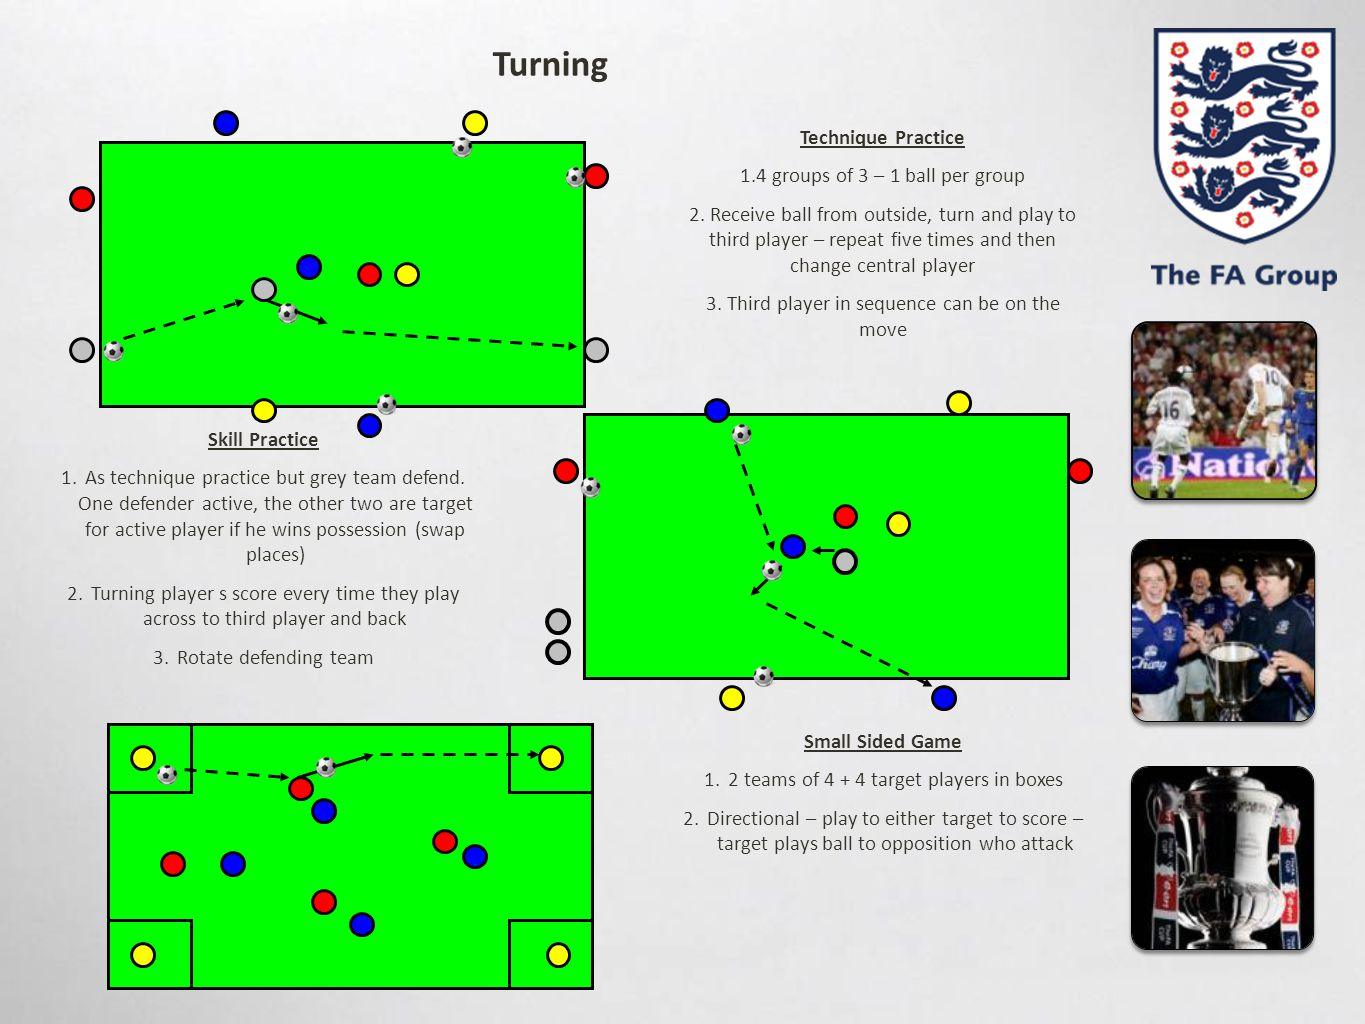 Turning Technique Practice 1.4 groups of 3 – 1 ball per group